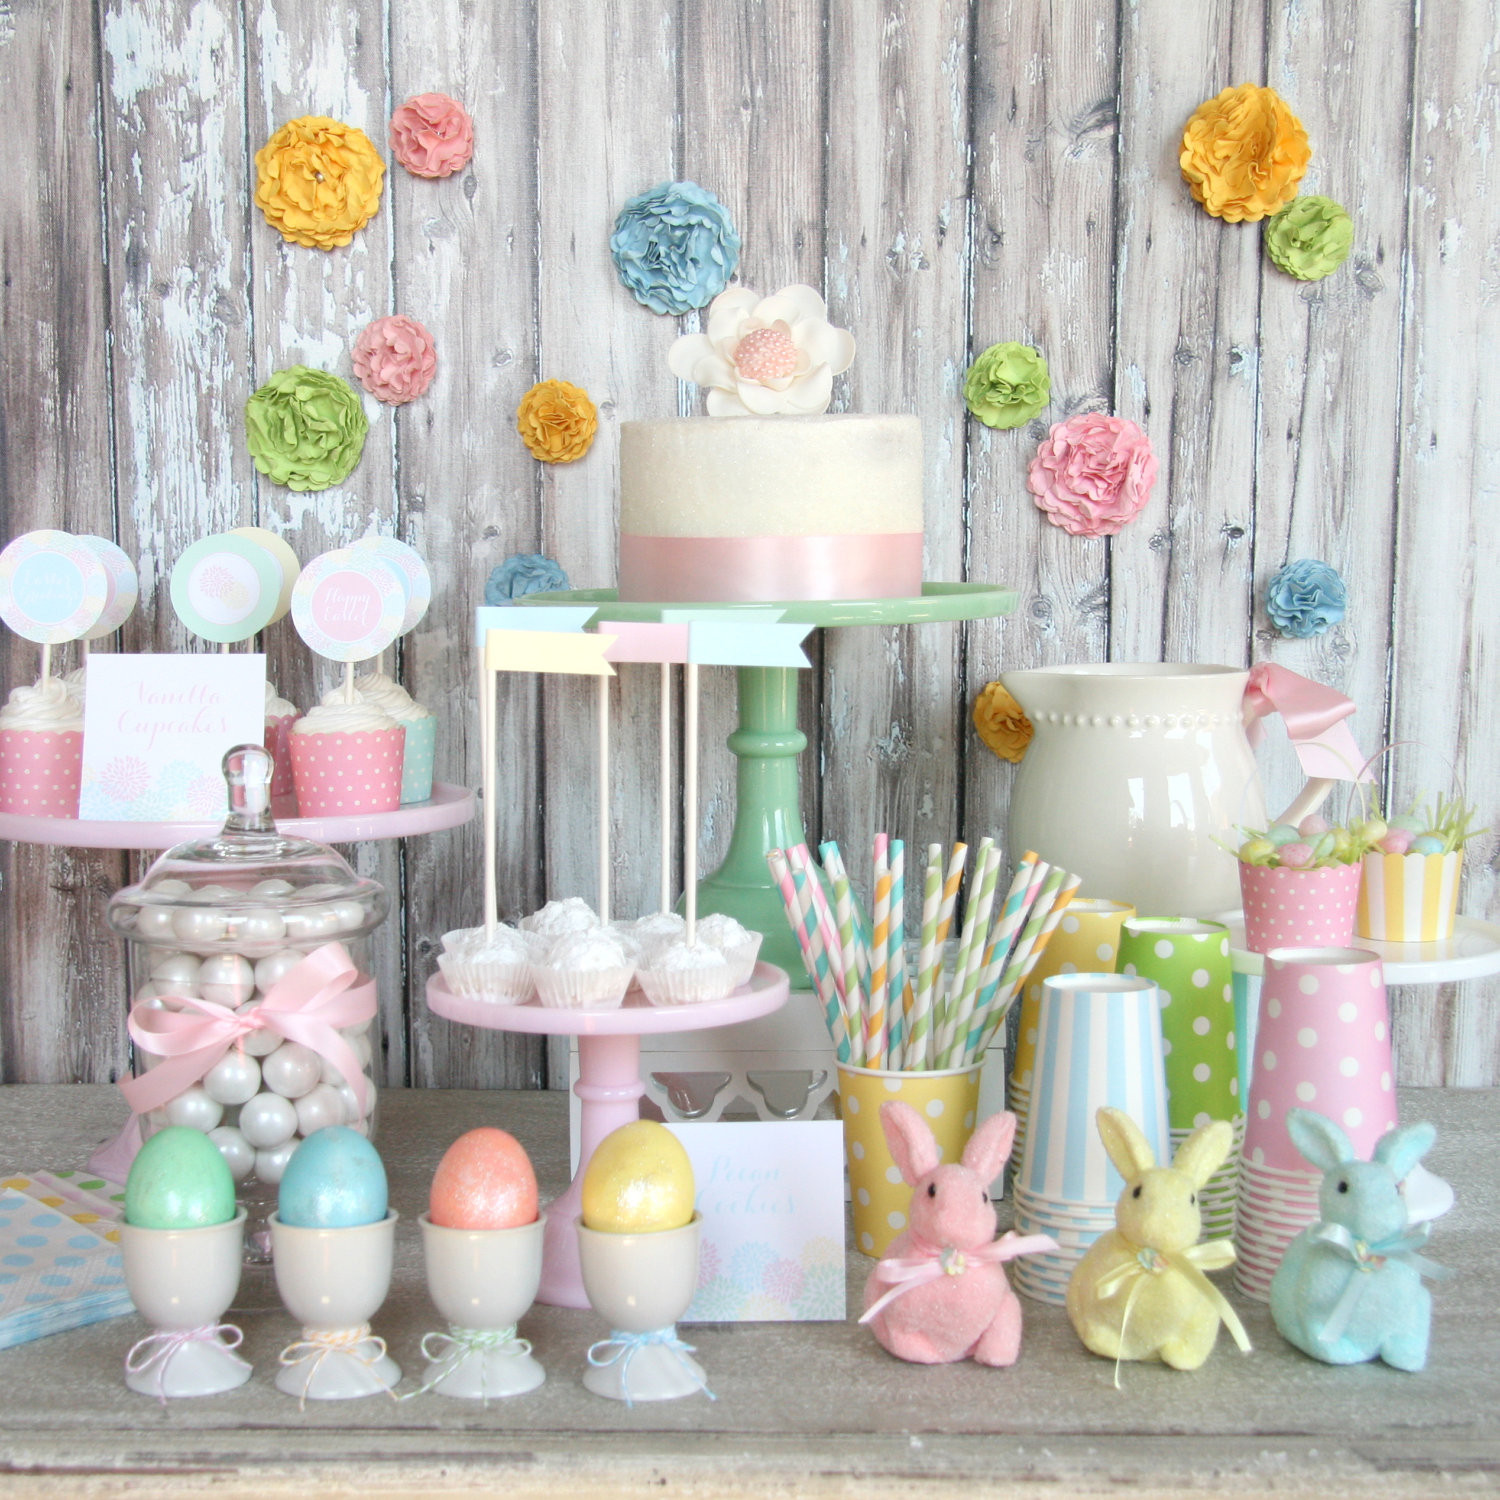 Party Ideas For Easter  28 CUTE PASTEL EASTER DECORATIONS Godfather Style